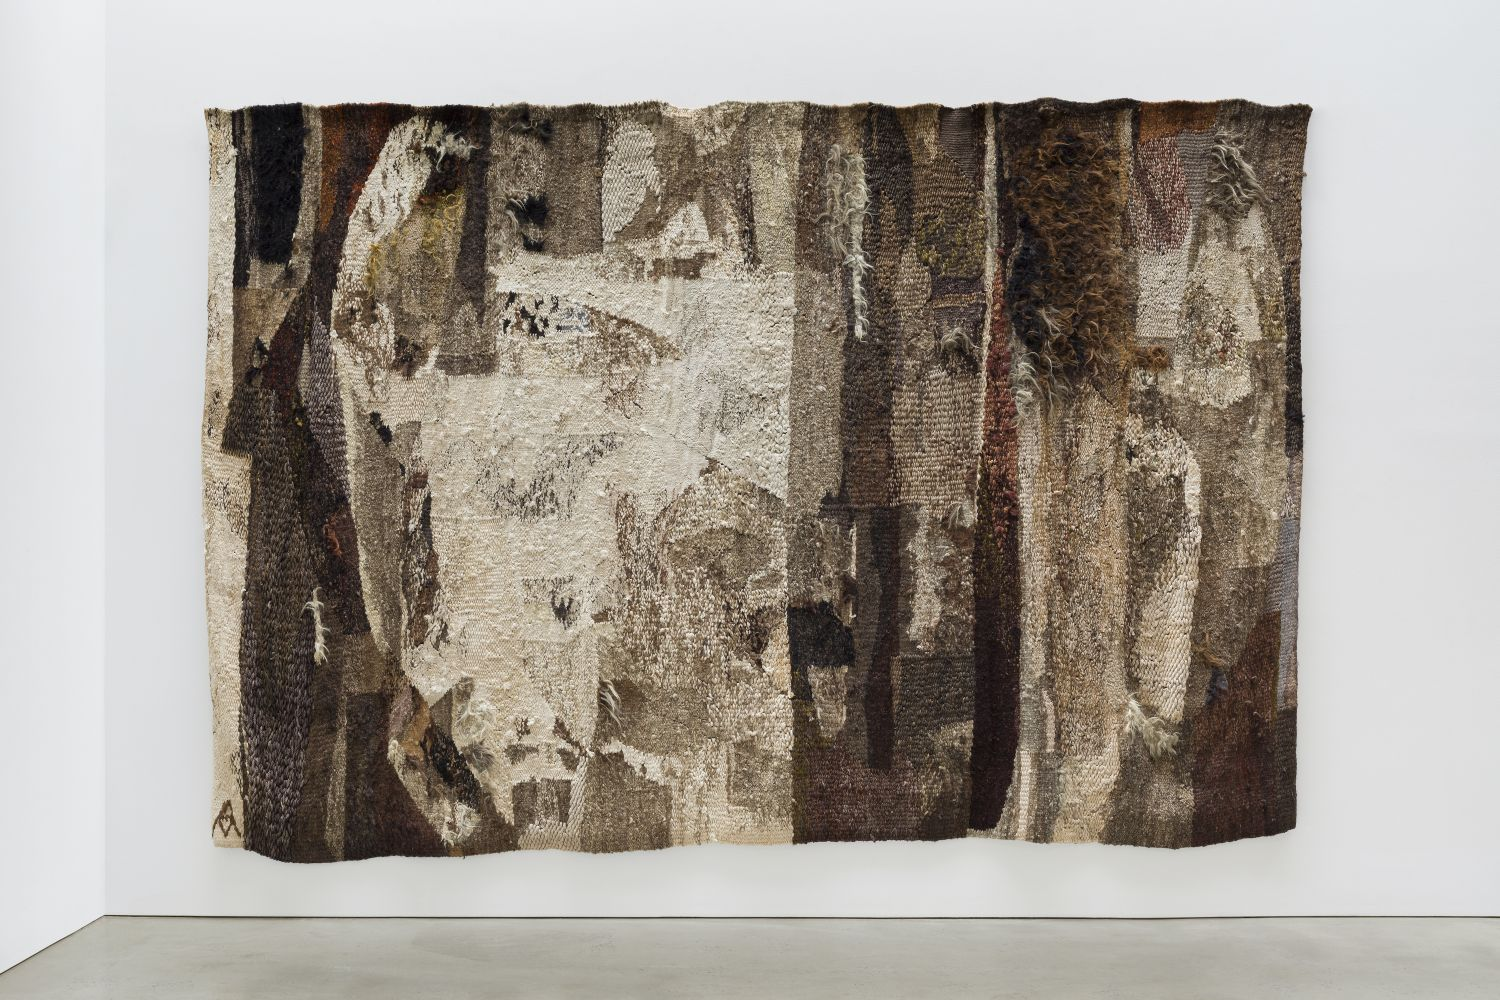 Monochromatic brown textile by Magdalena Abakanowicz